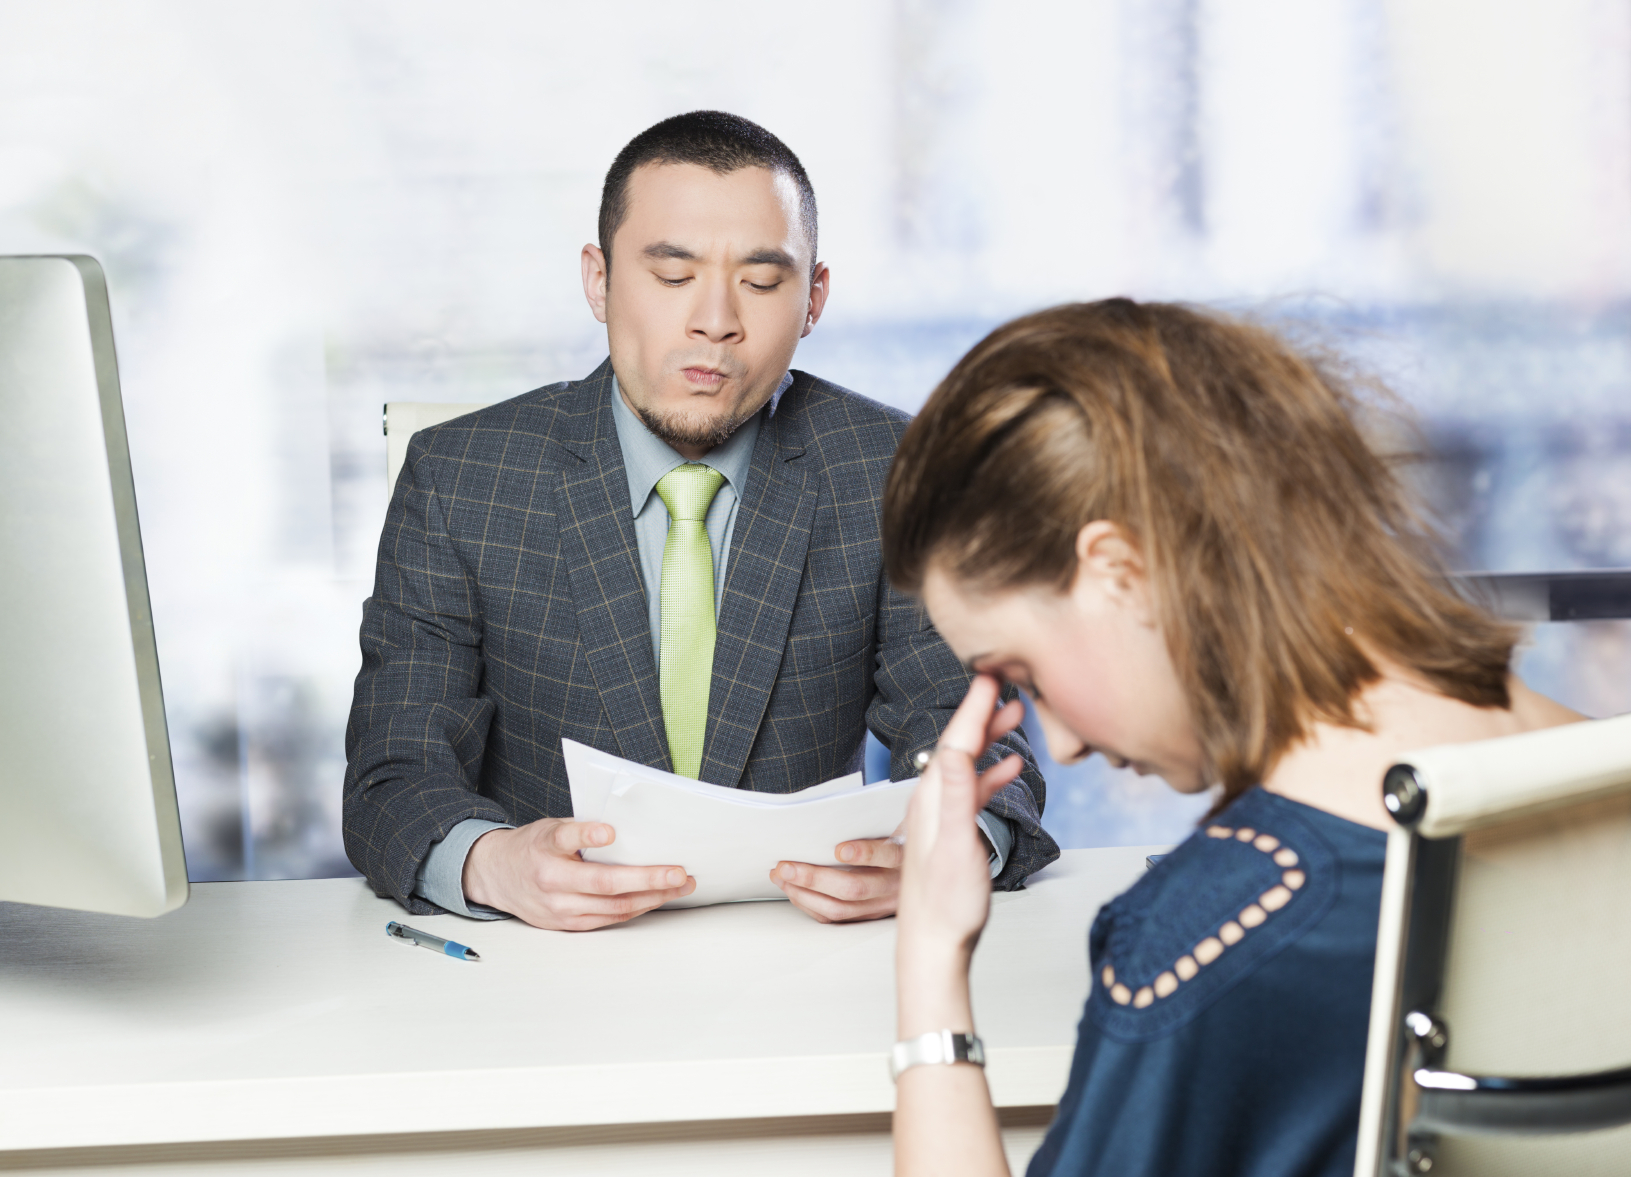 5 Things You Should Never Say in a Job Interview